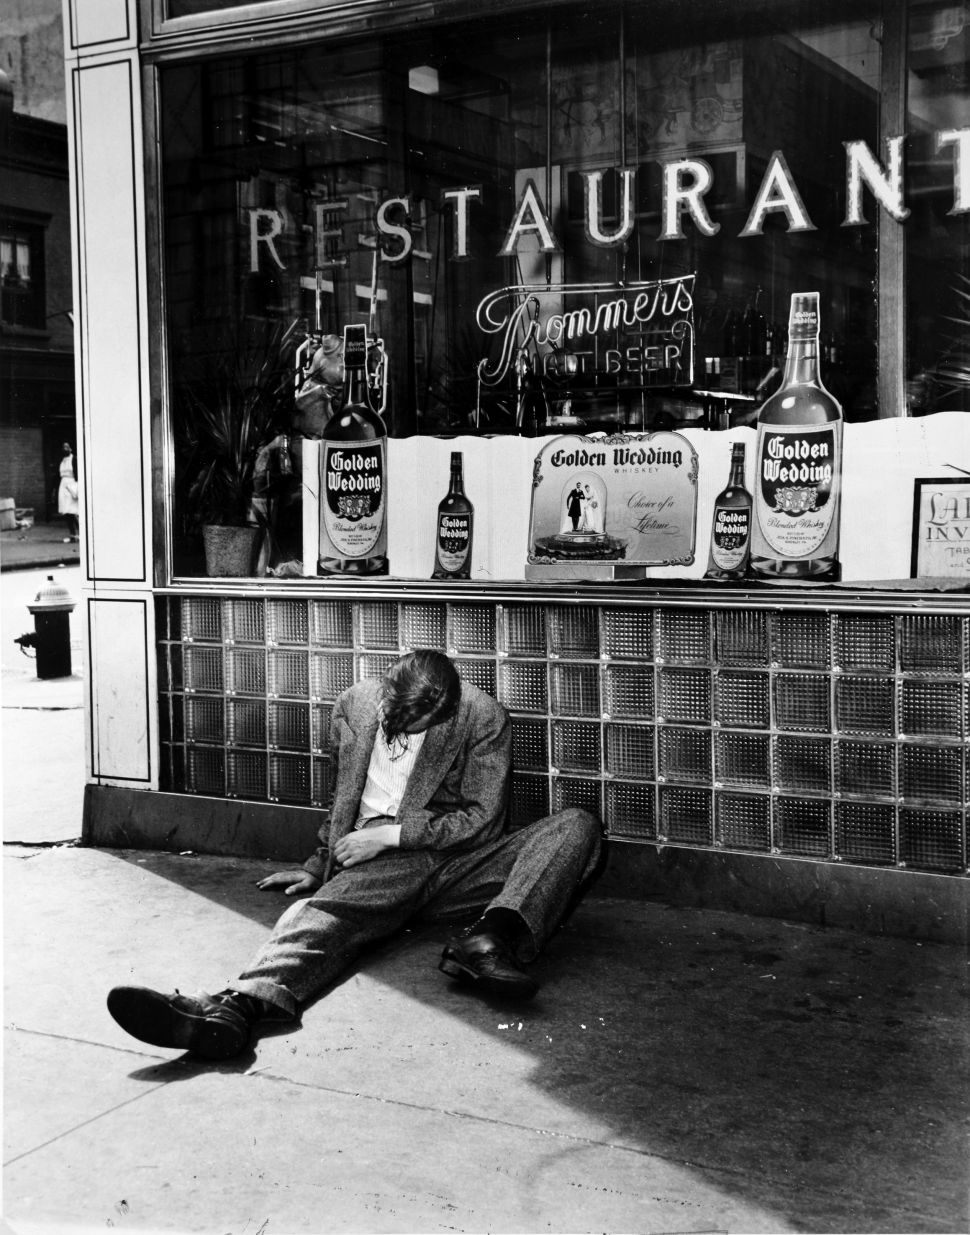 A man sits collapsed in a drunken stupor outside a licensed restaurant.